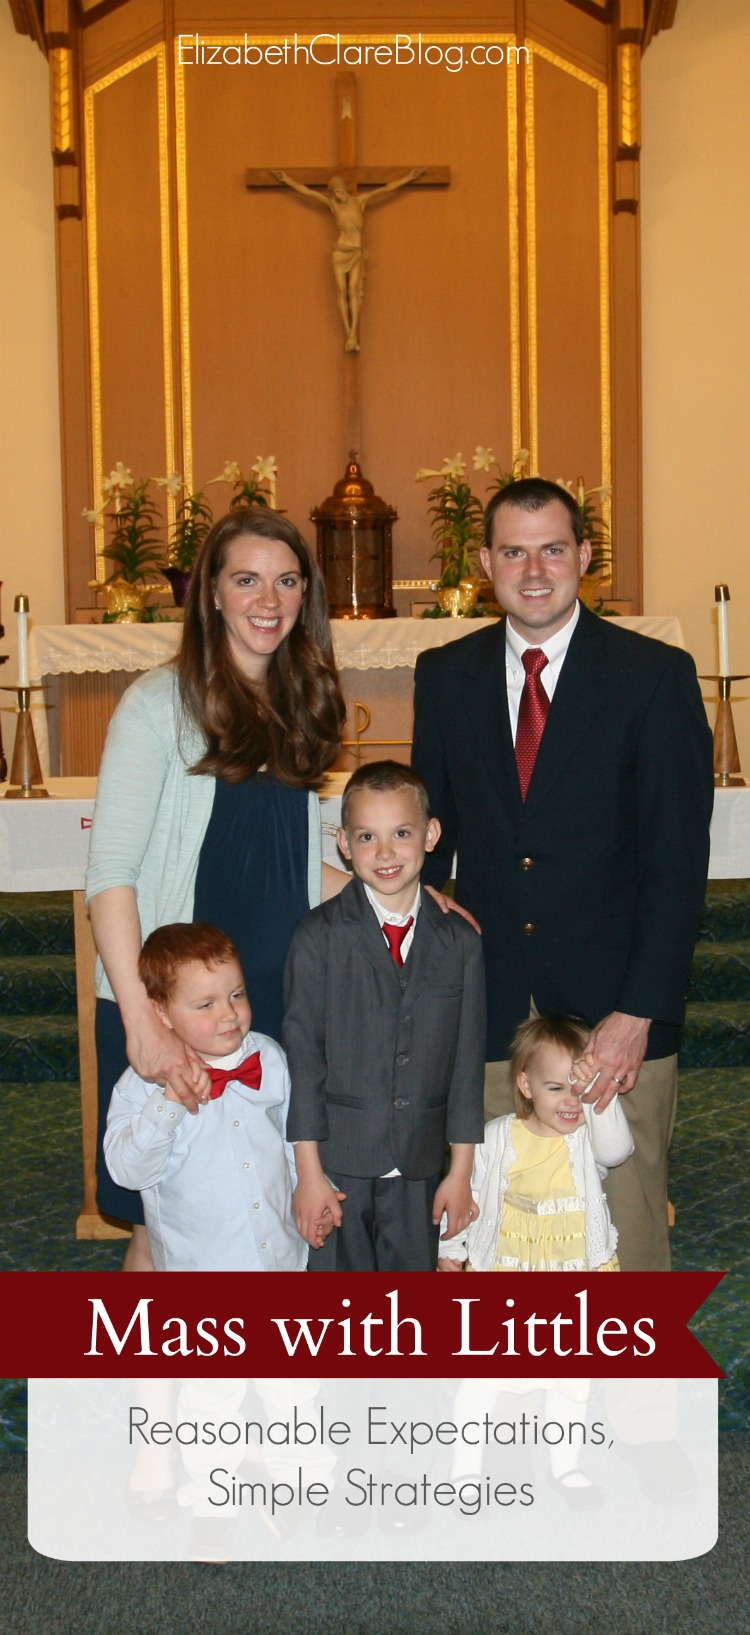 Manners and expectations, strategies, tips, and help for surviving during Mass with your kids